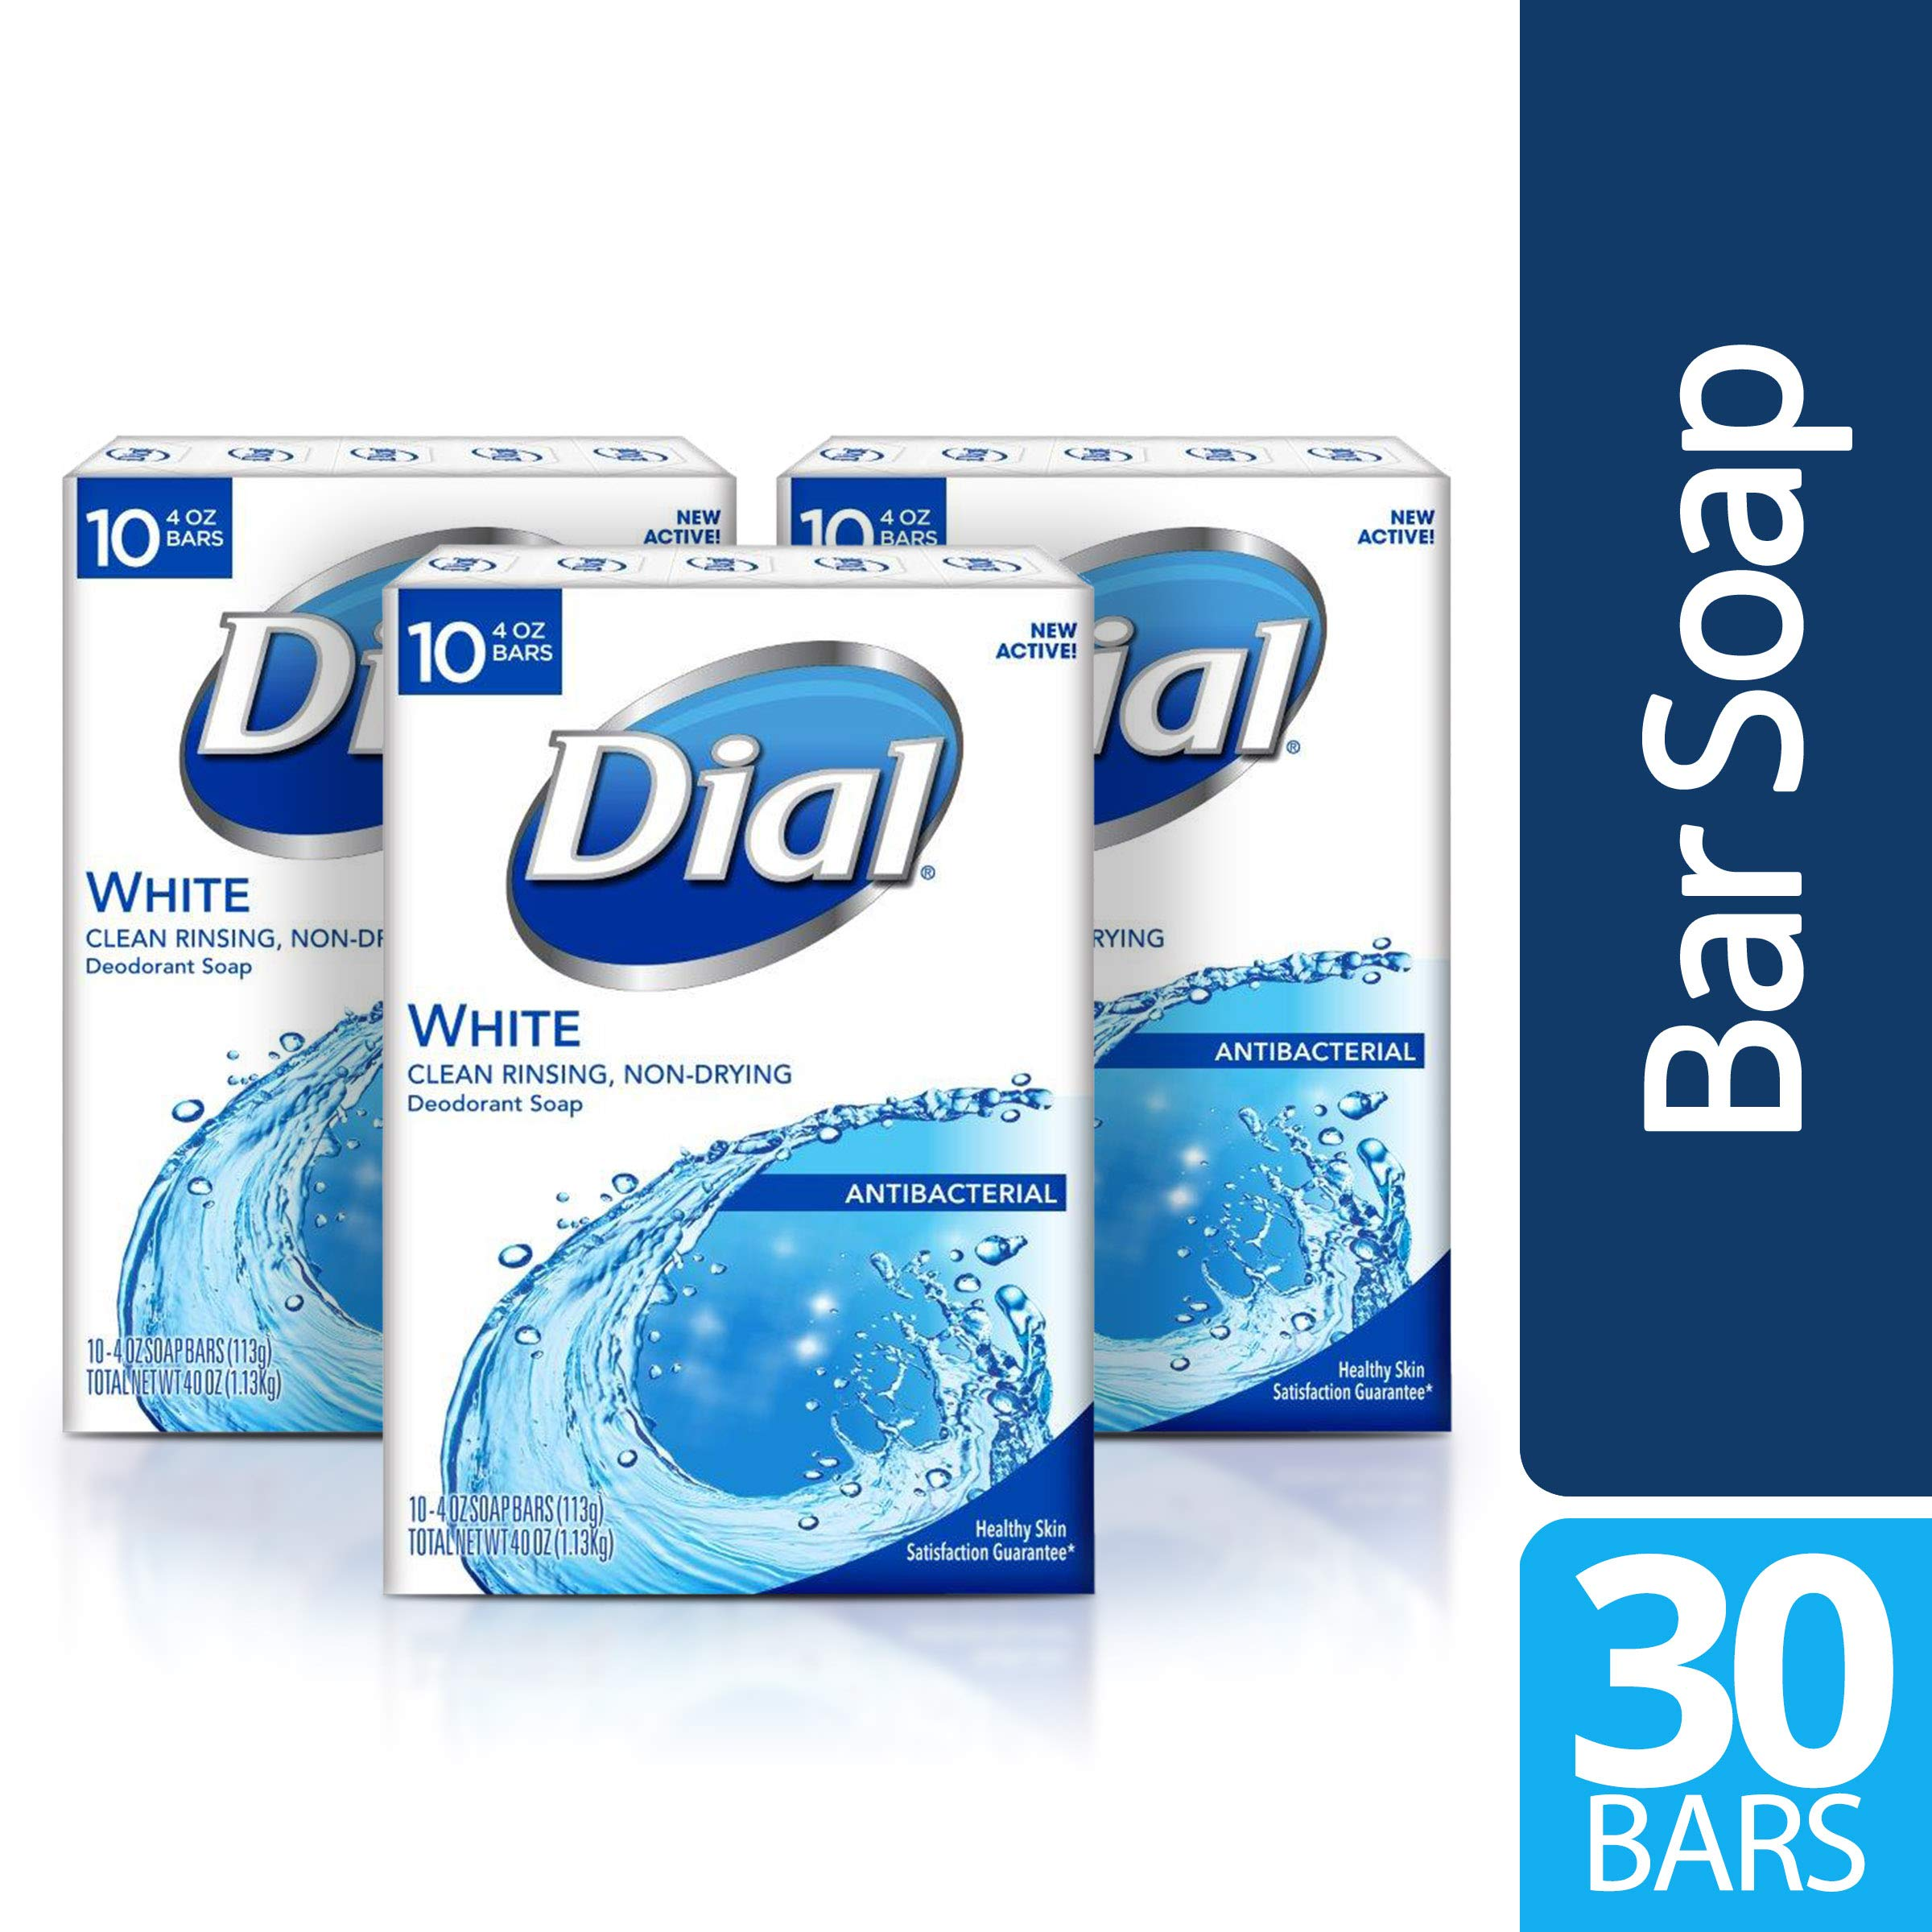 Dial Antibacterial Bar Soap, White, 30 Count by Dial